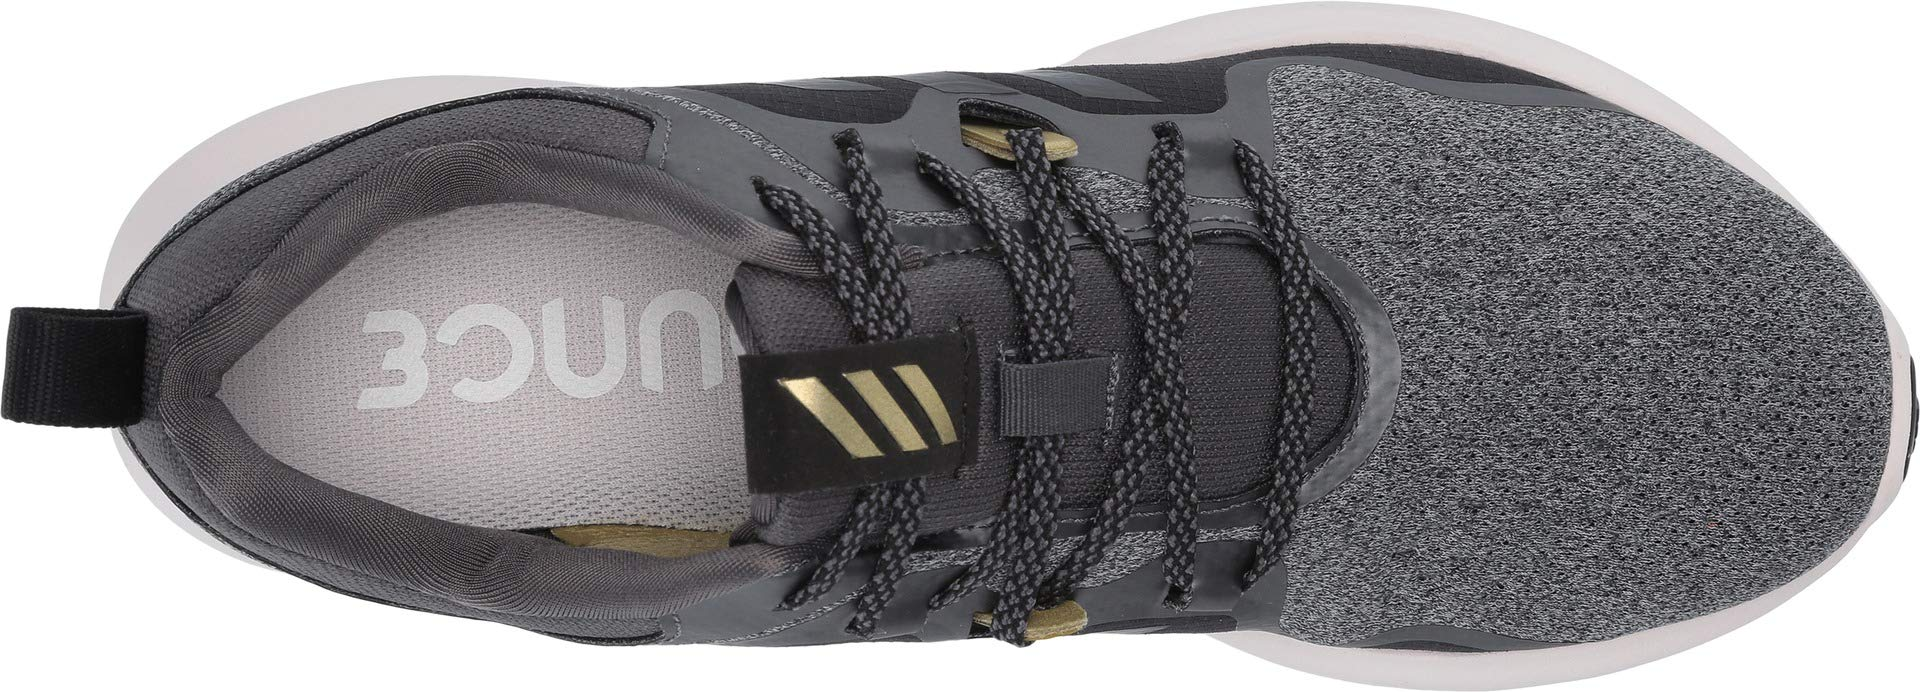 adidas Running Women's Edgebounce Core Black/Core Black 5 B US by adidas (Image #2)